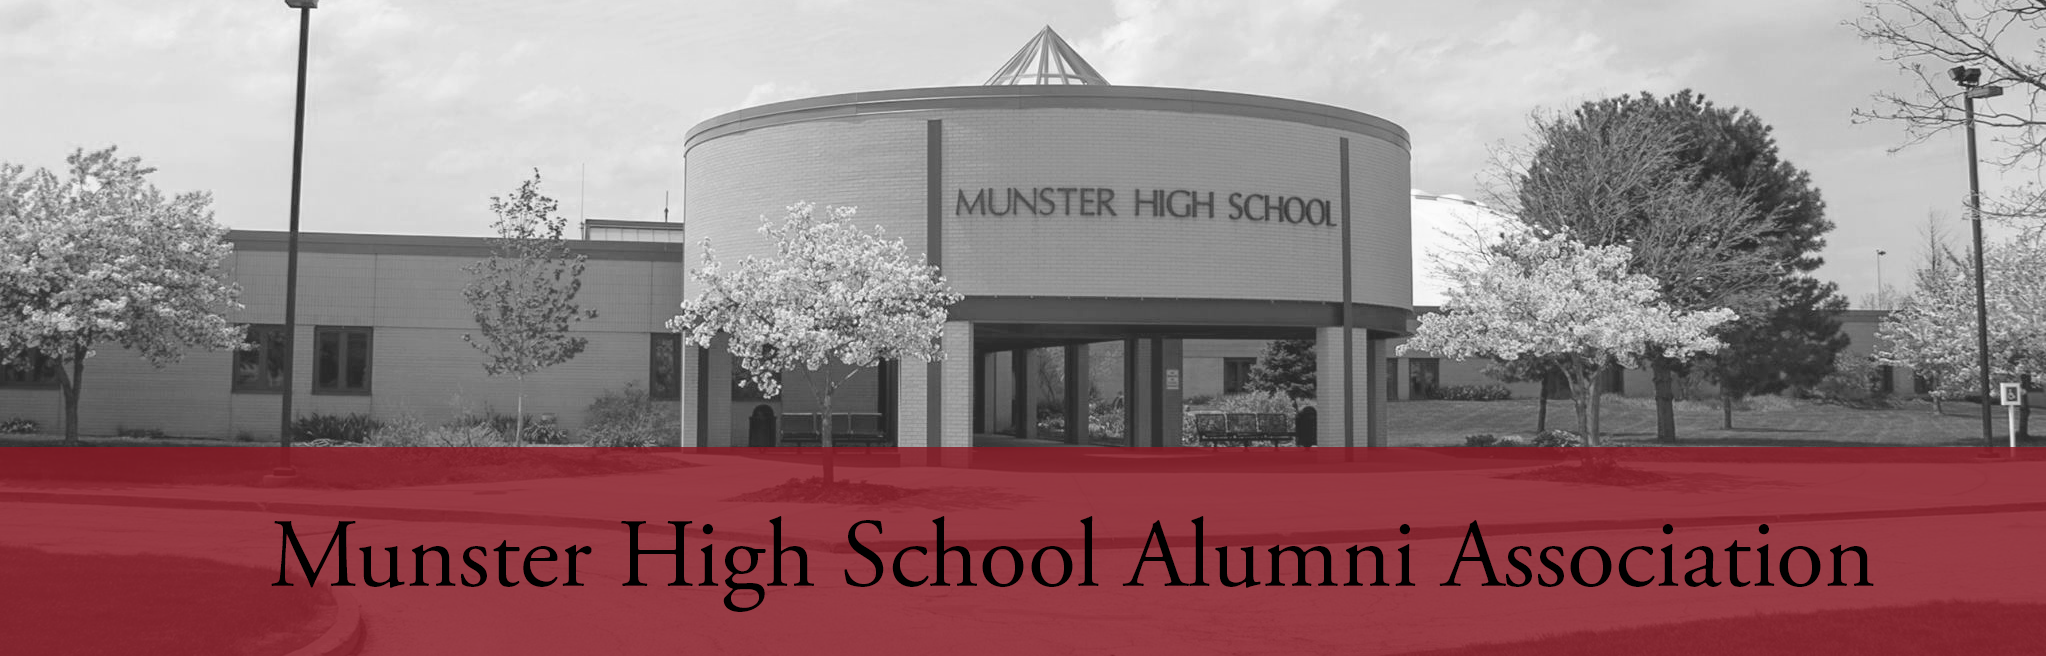 Munster High School Alumni Association